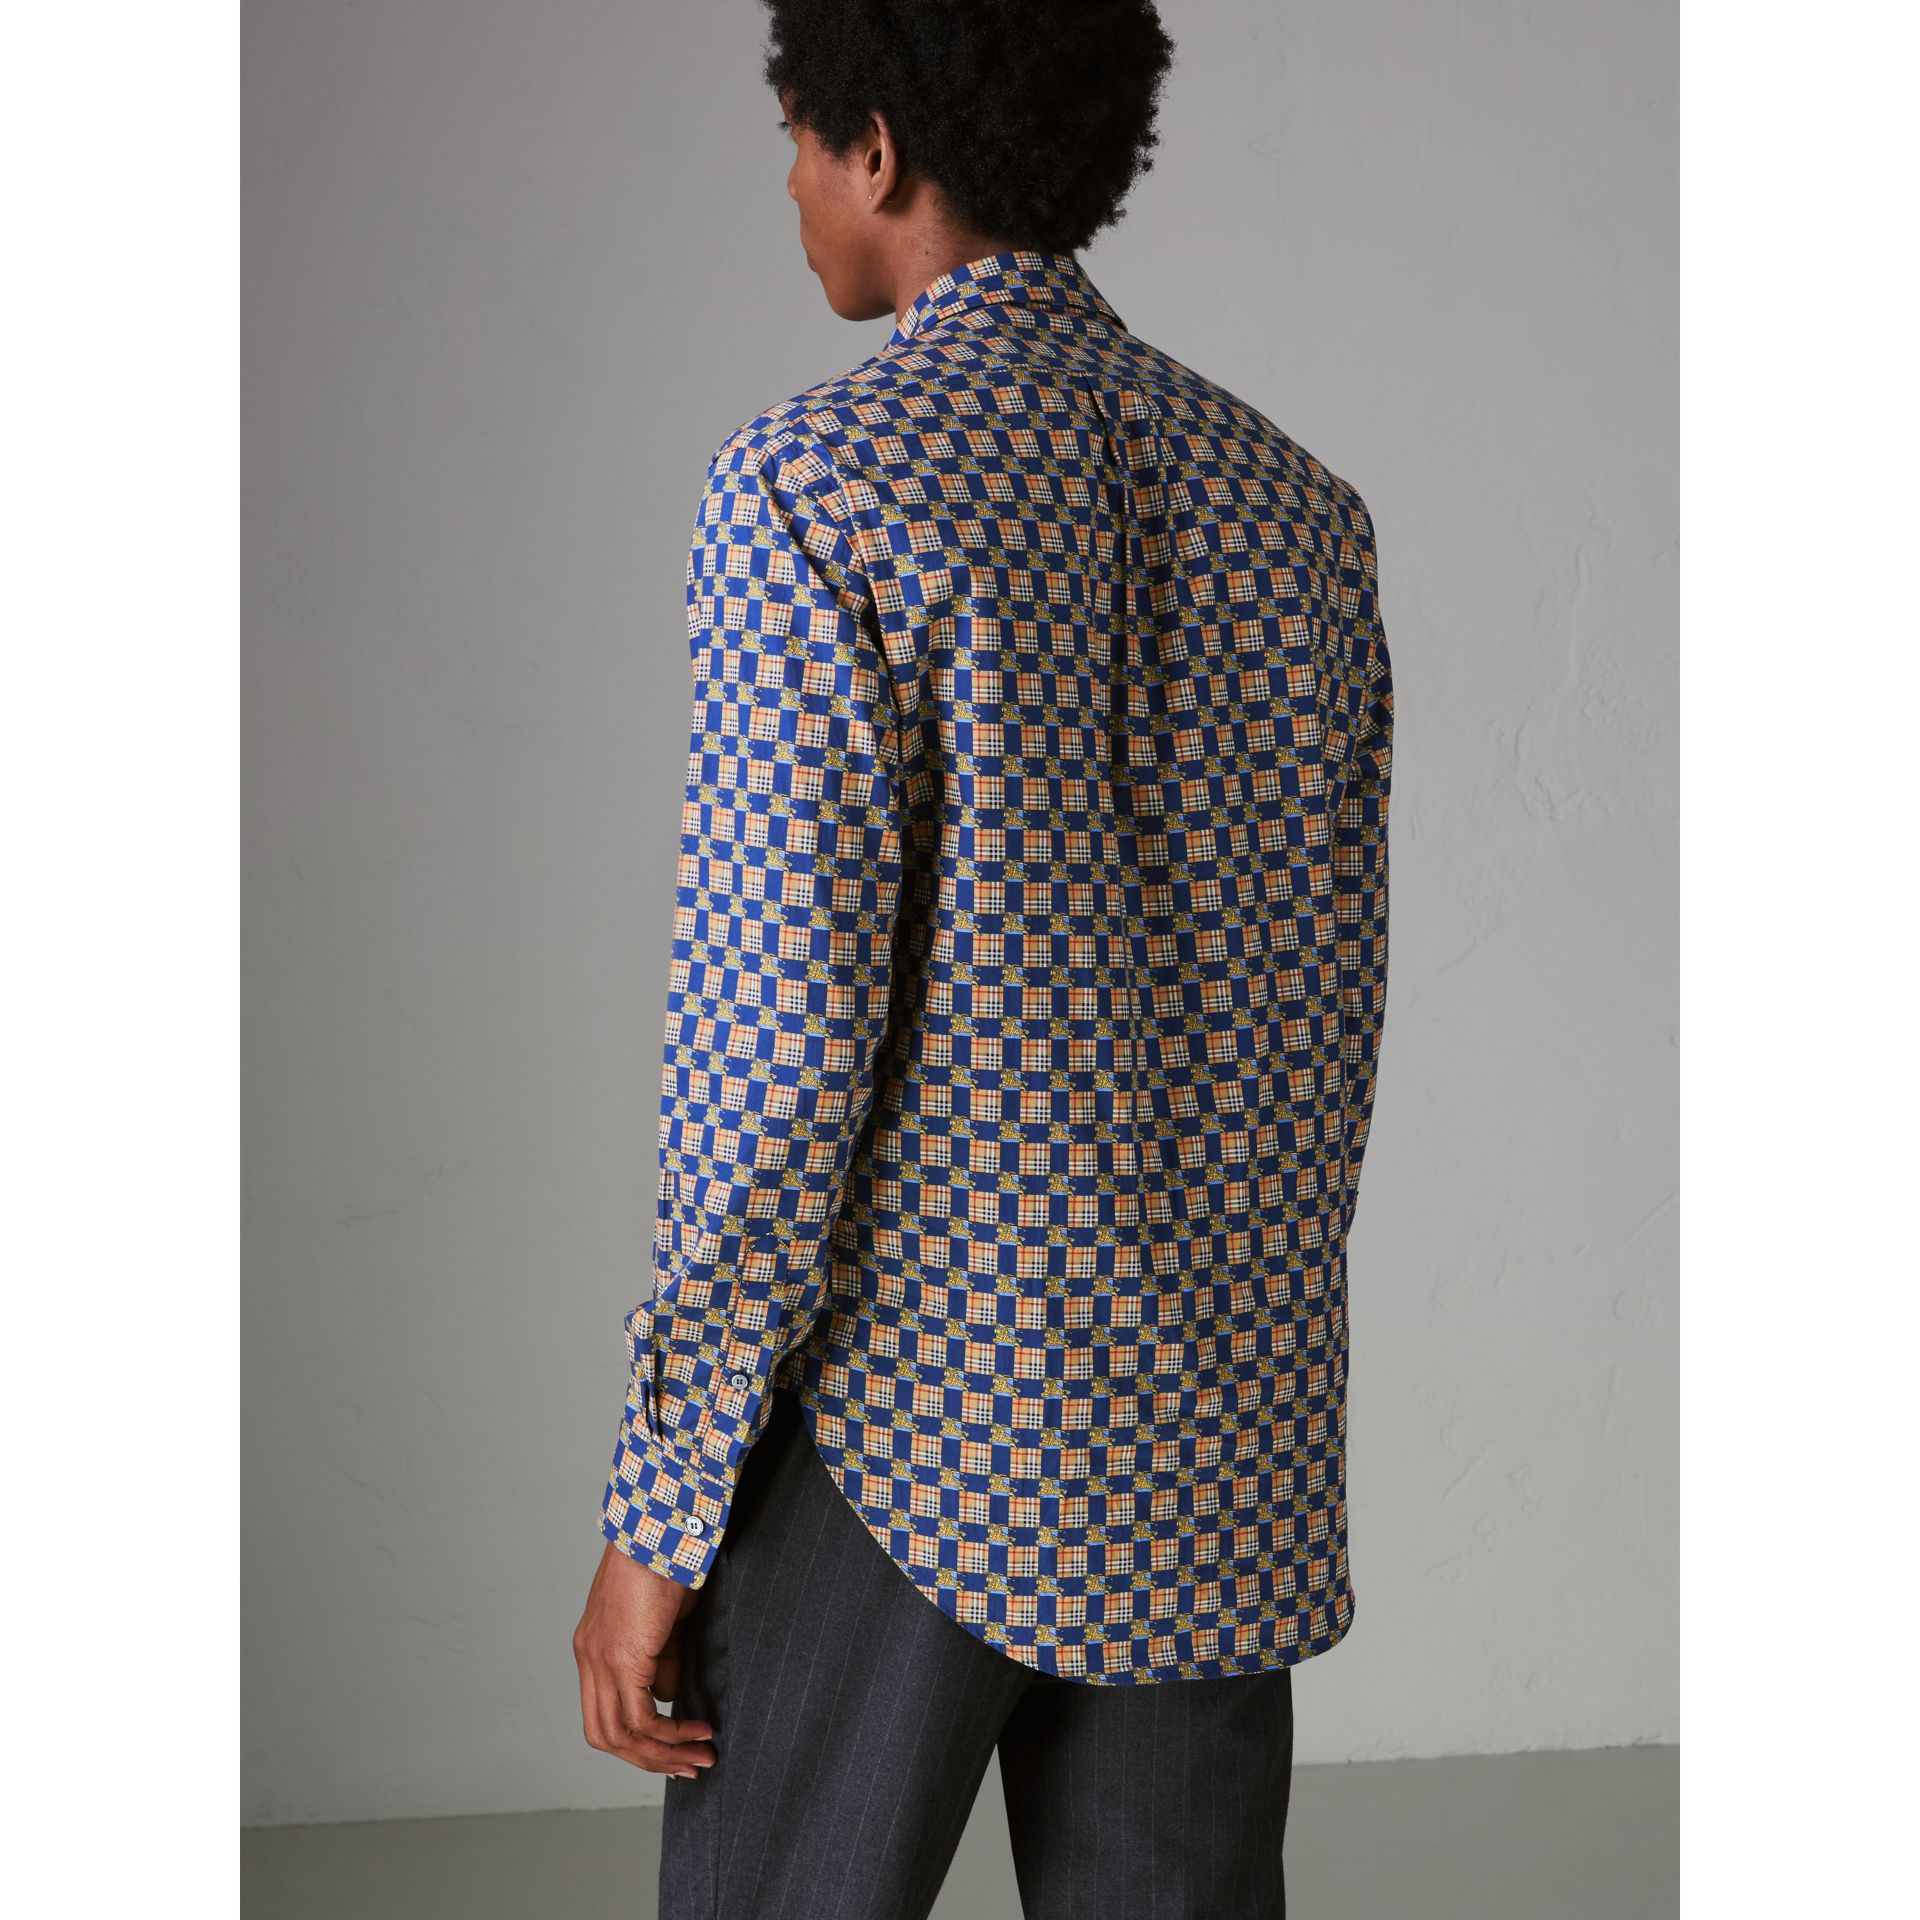 Tiled Archive Print Cotton Shirt in Navy - Men | Burberry United States - gallery image 2